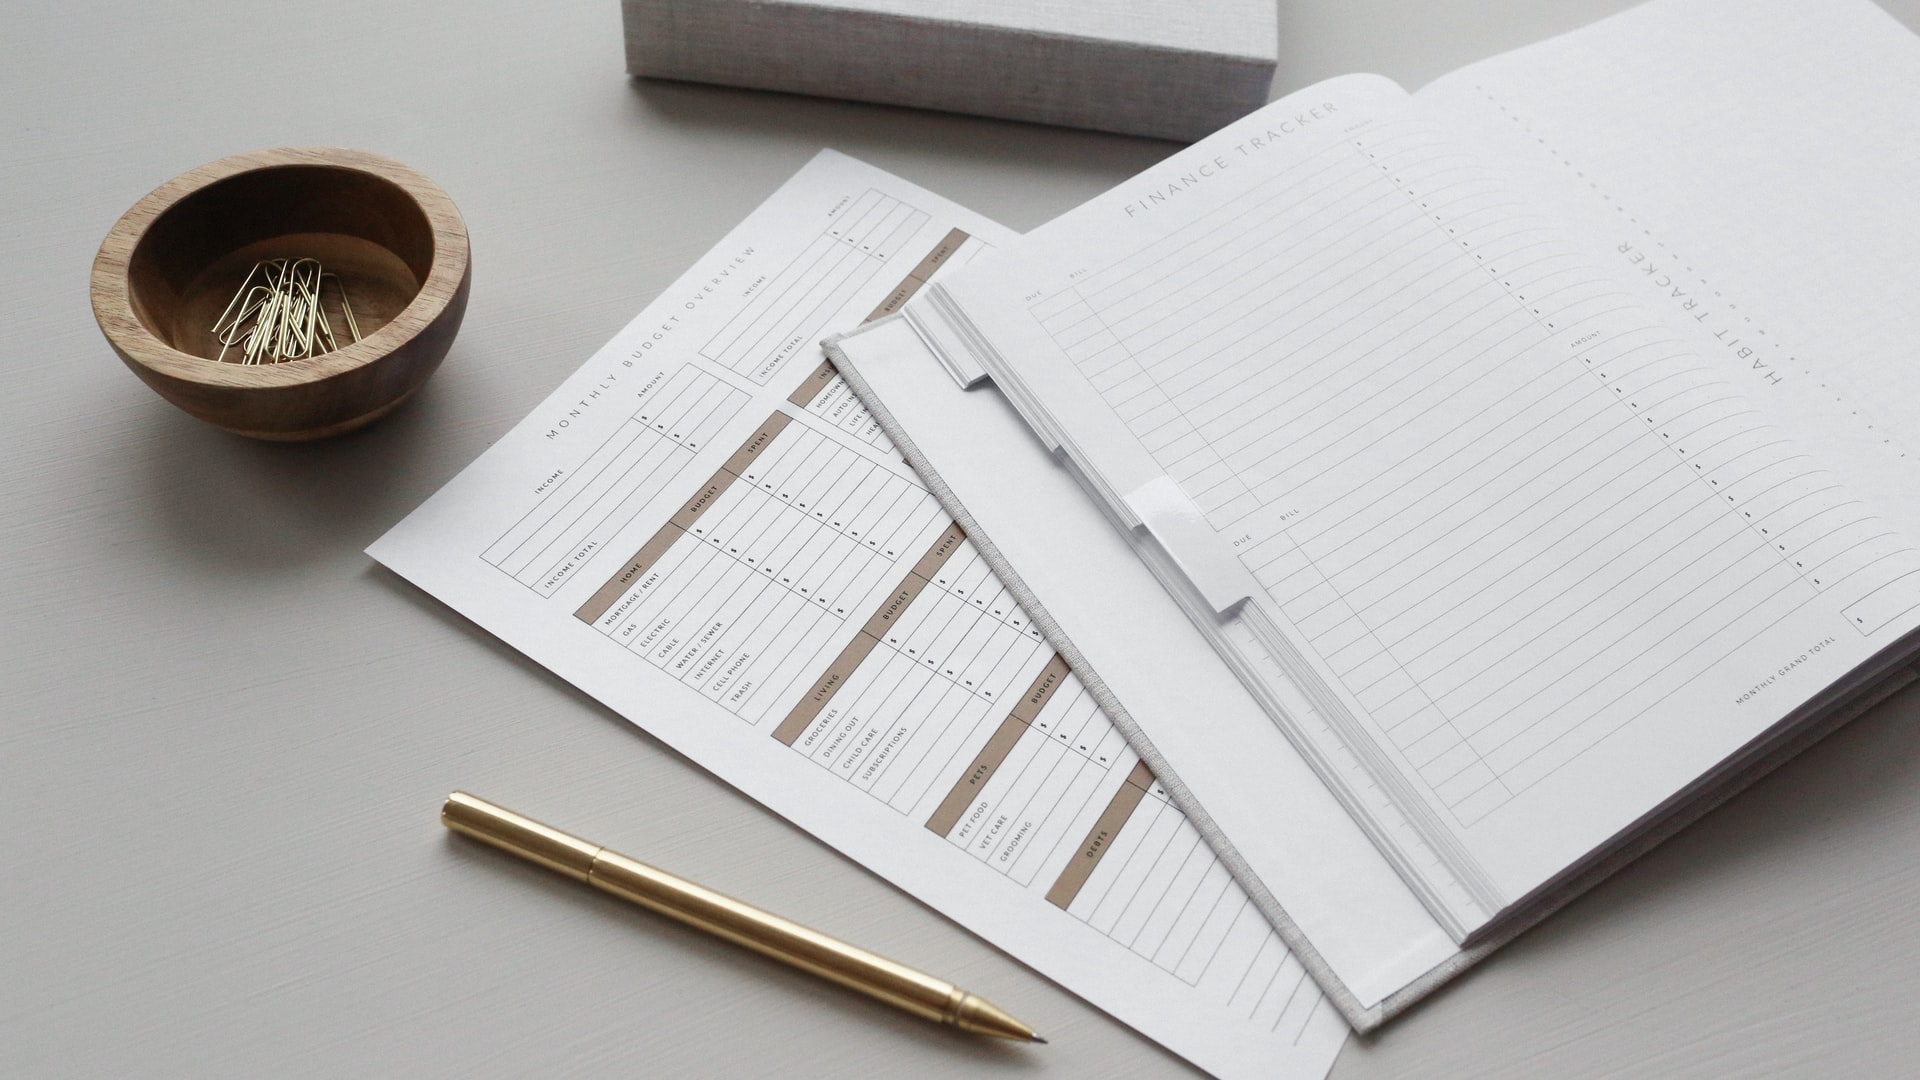 A paper planner and a brass pen